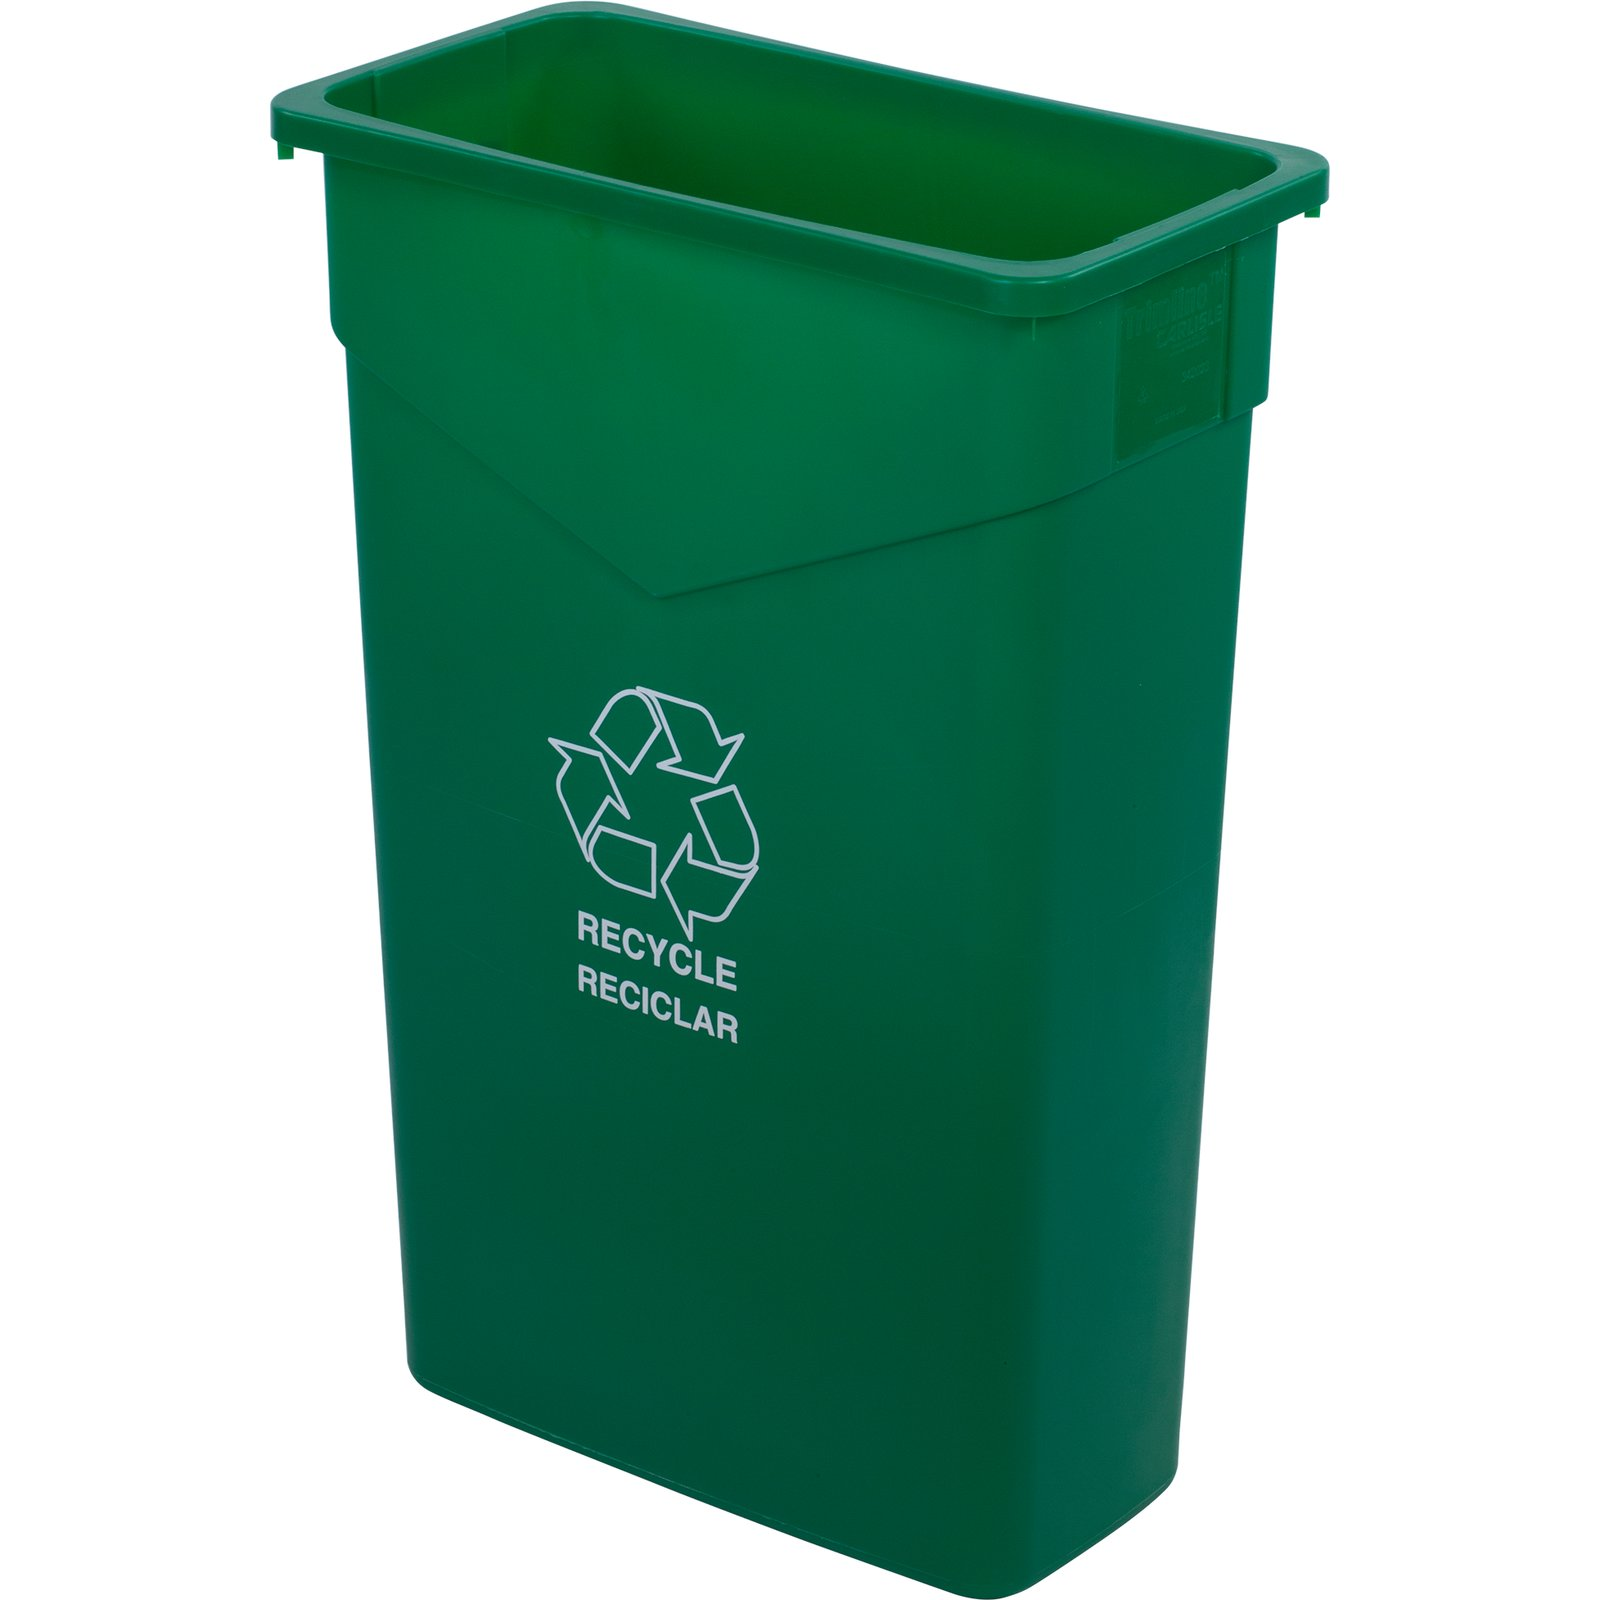 342023REC09 TrimLine Rectangle RECYCLE Waste Container 23 Gallon